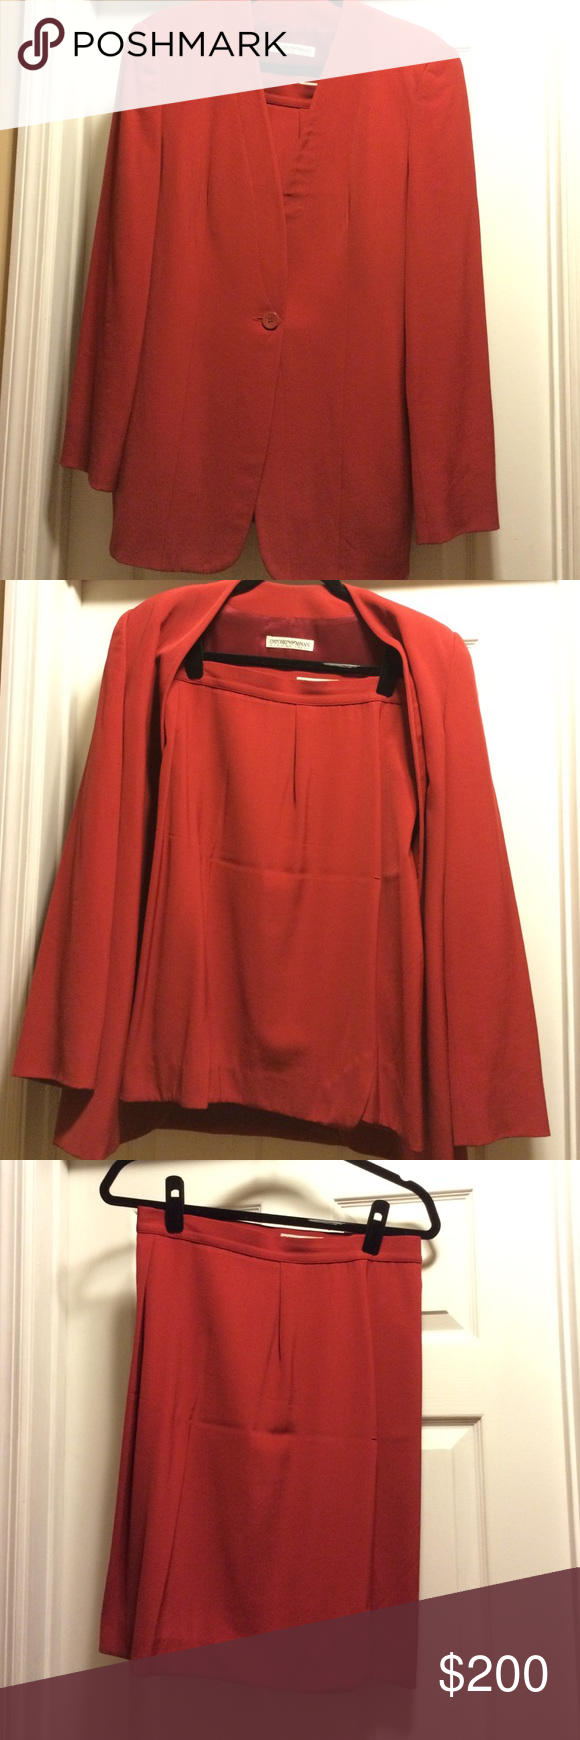 Emporio Armani skirt suit. Red size 46 Red jacket and skirt. 70%wool 30%viscosa. Skirt 22 inches long from waist. Skirts Skirt Sets